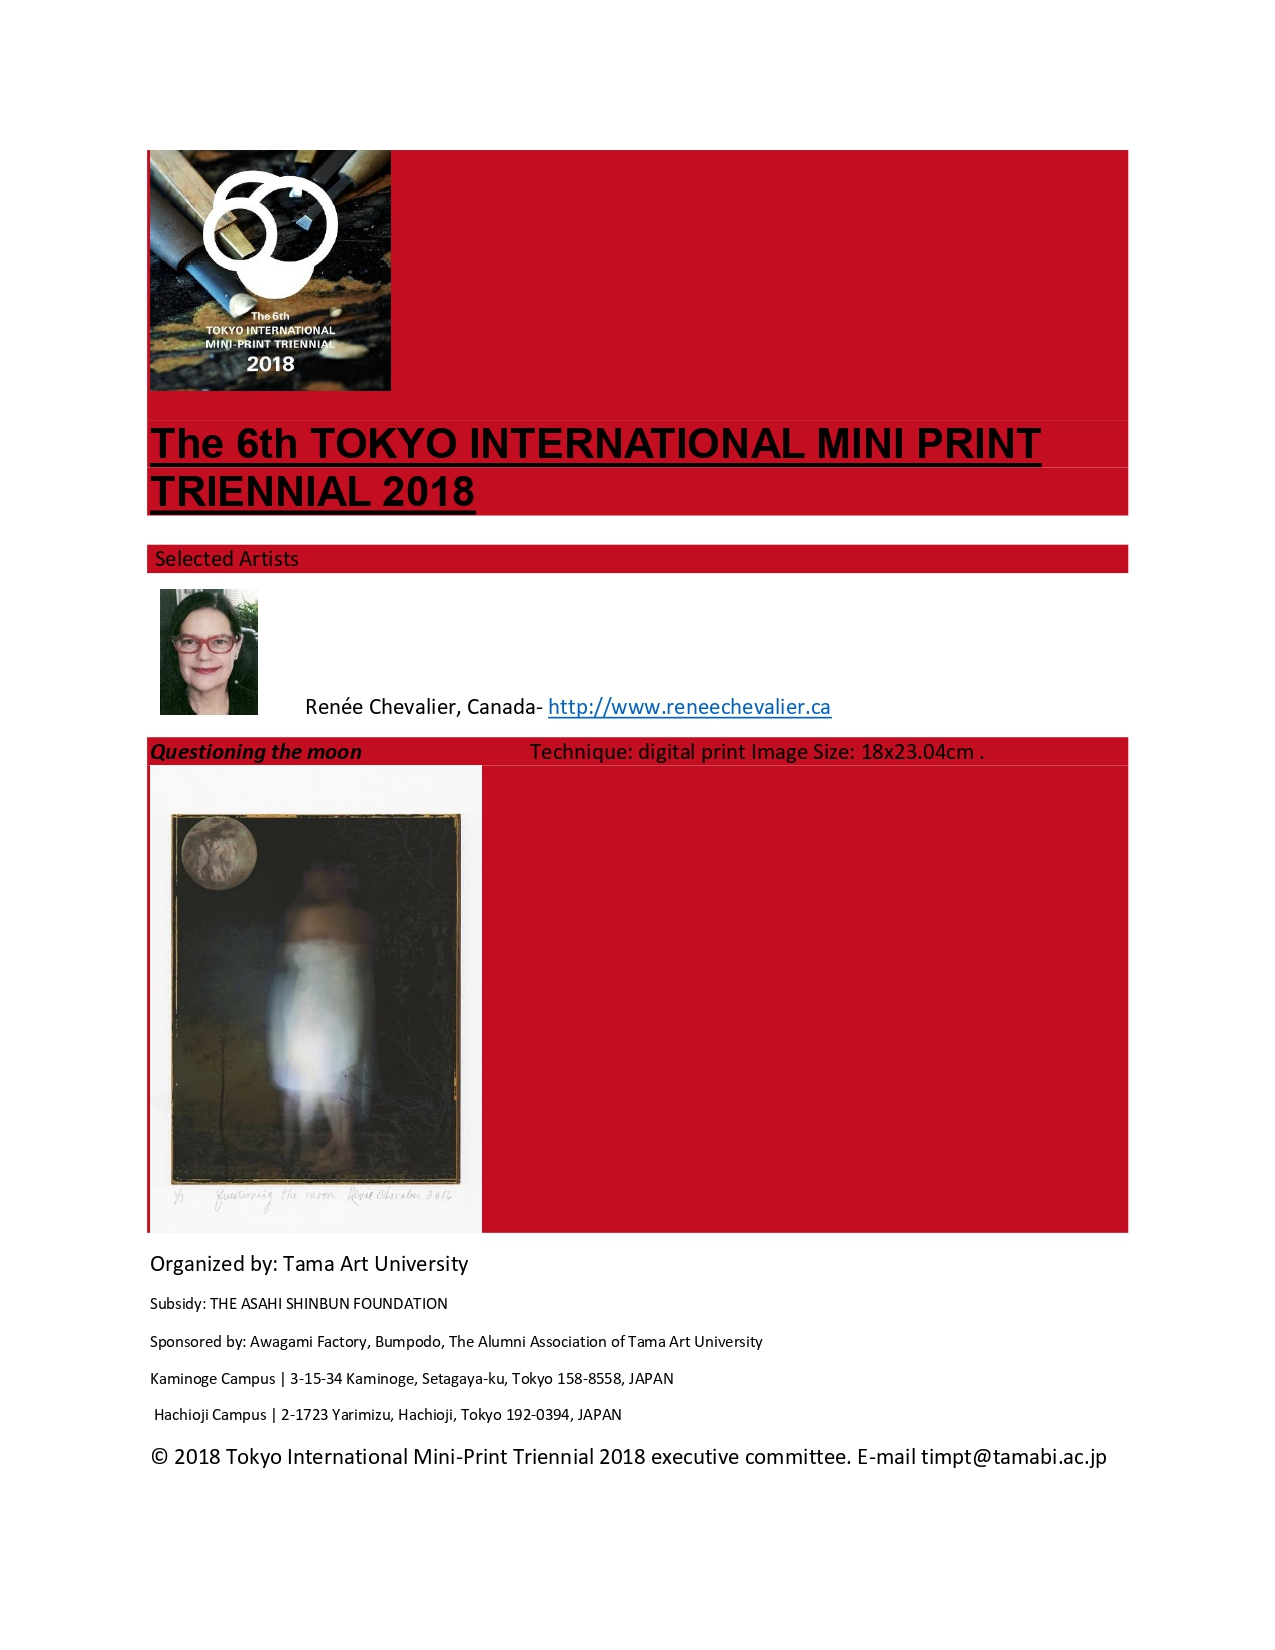 6th TOKYO INTERNATIONAL MINI PRINT TRIENNIAL 2018 (378K)